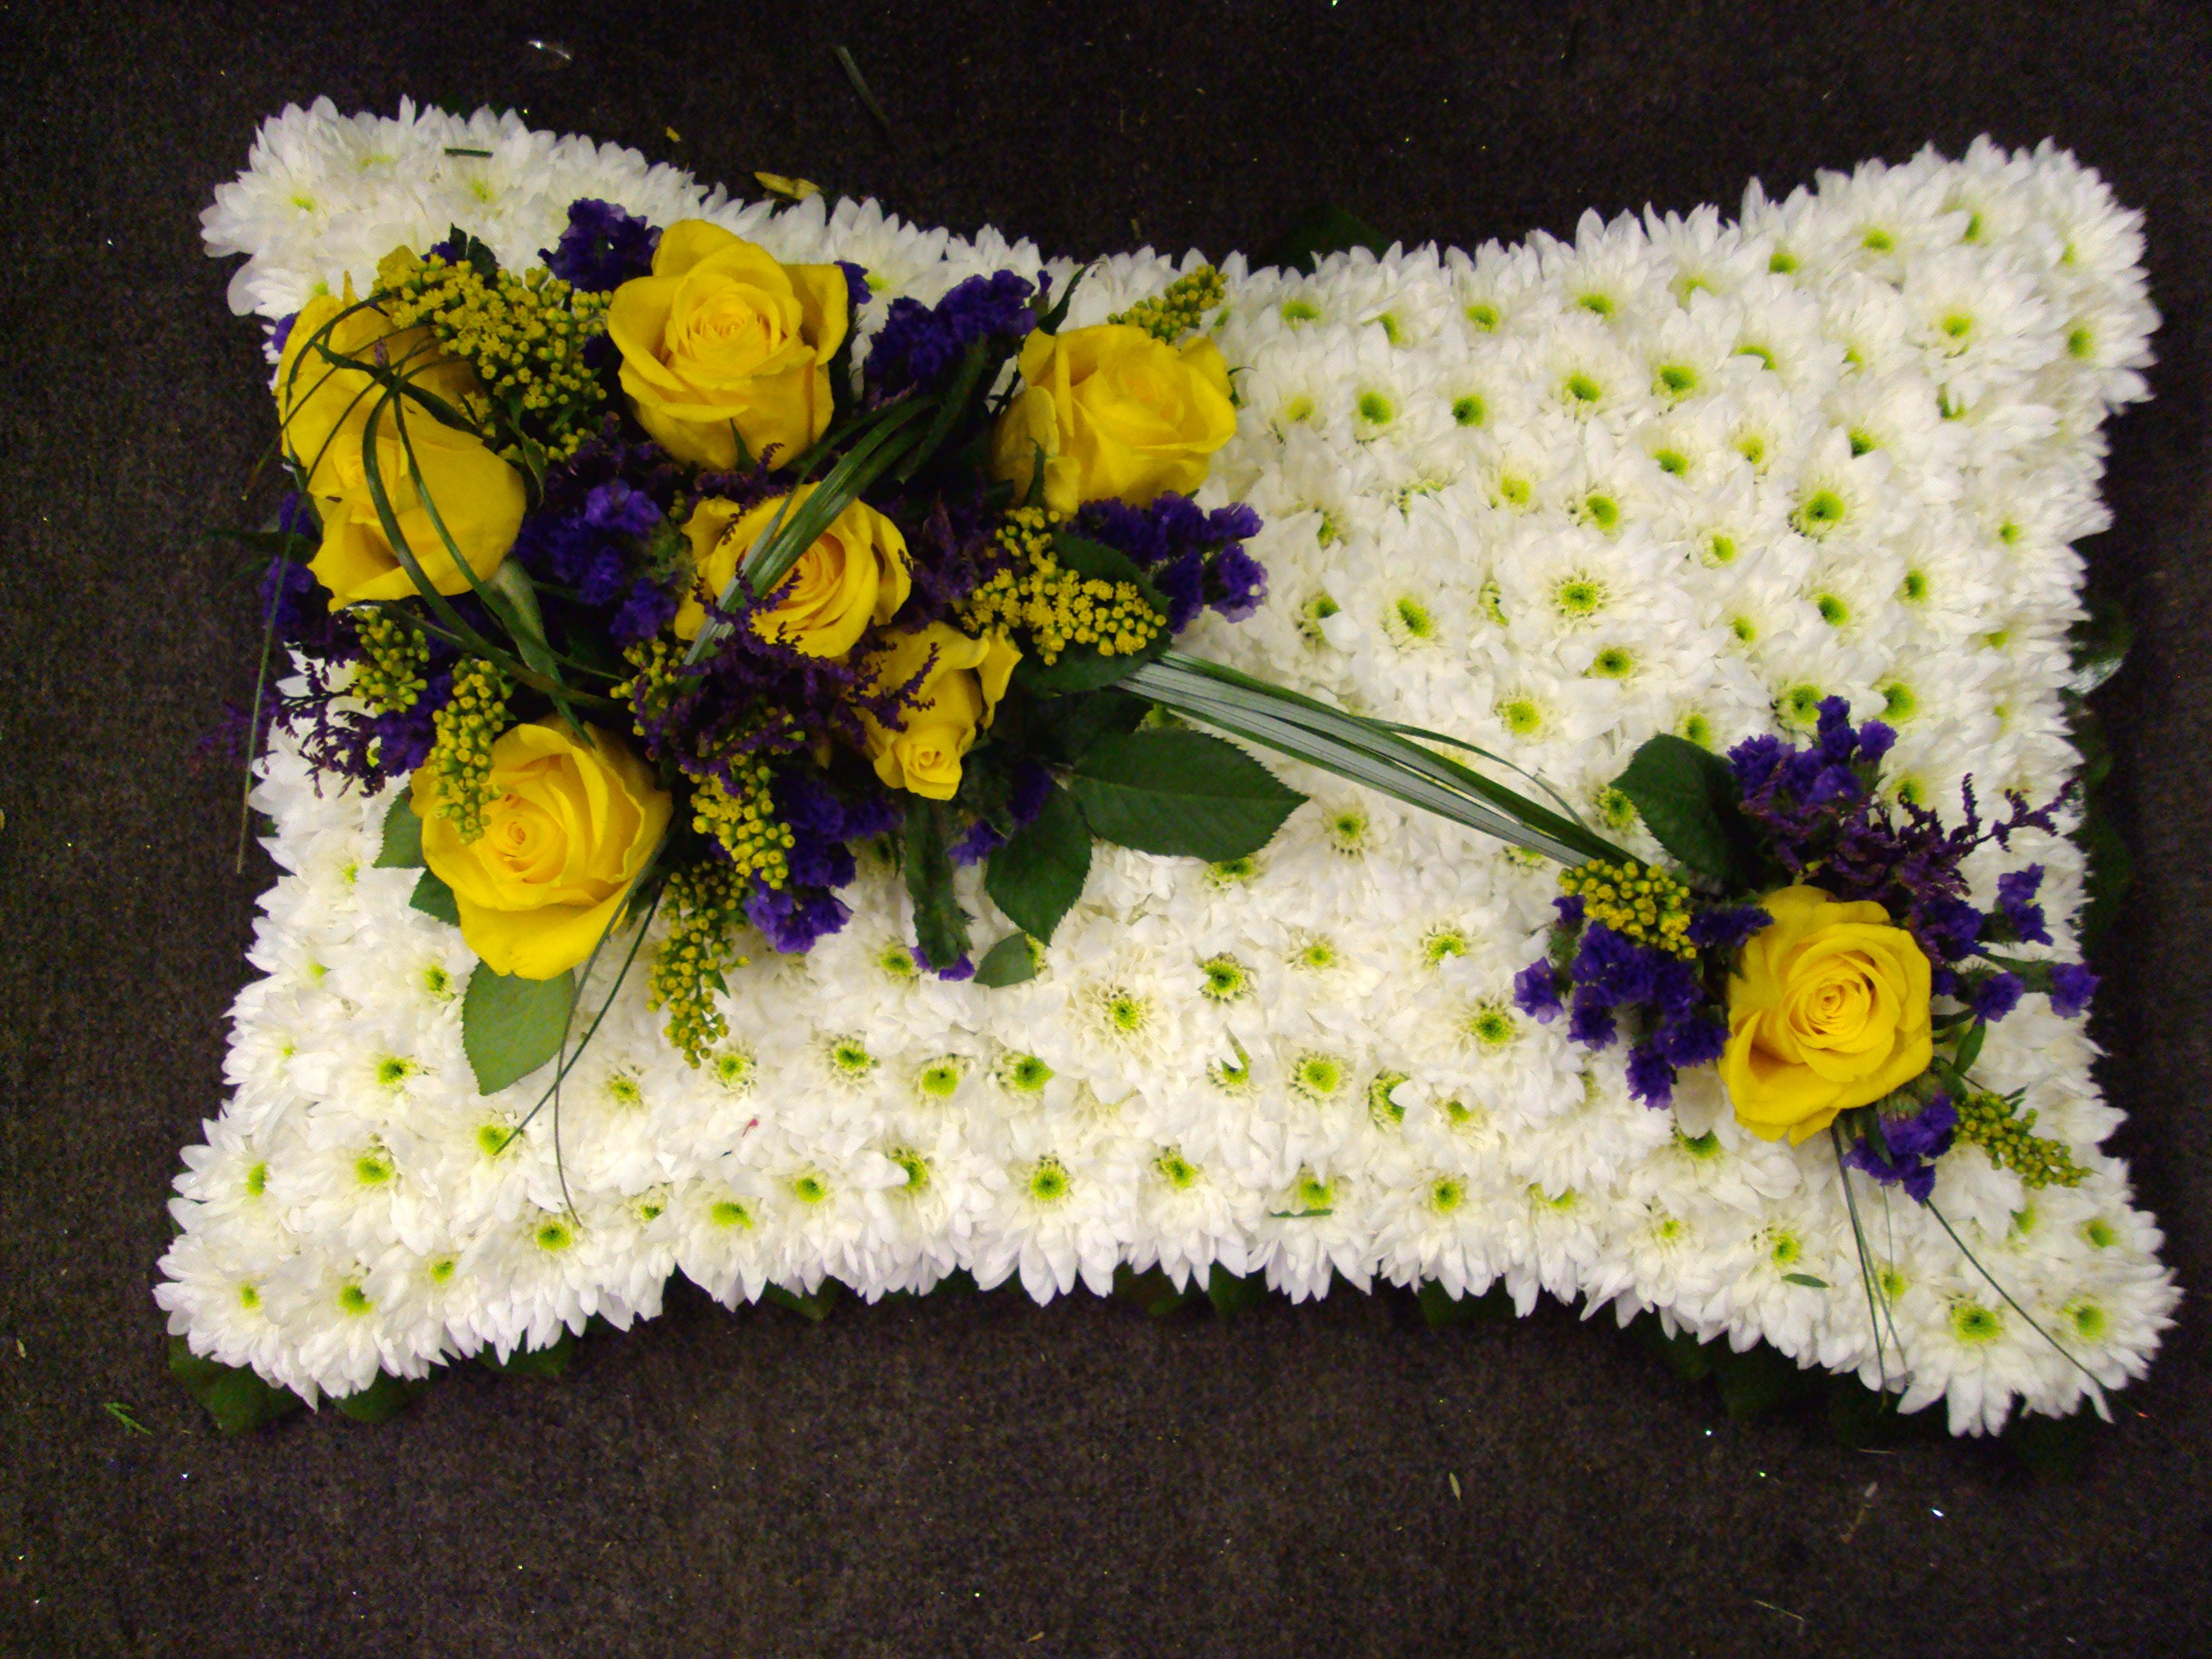 white pillow with yellow rose and purple statice arrangement